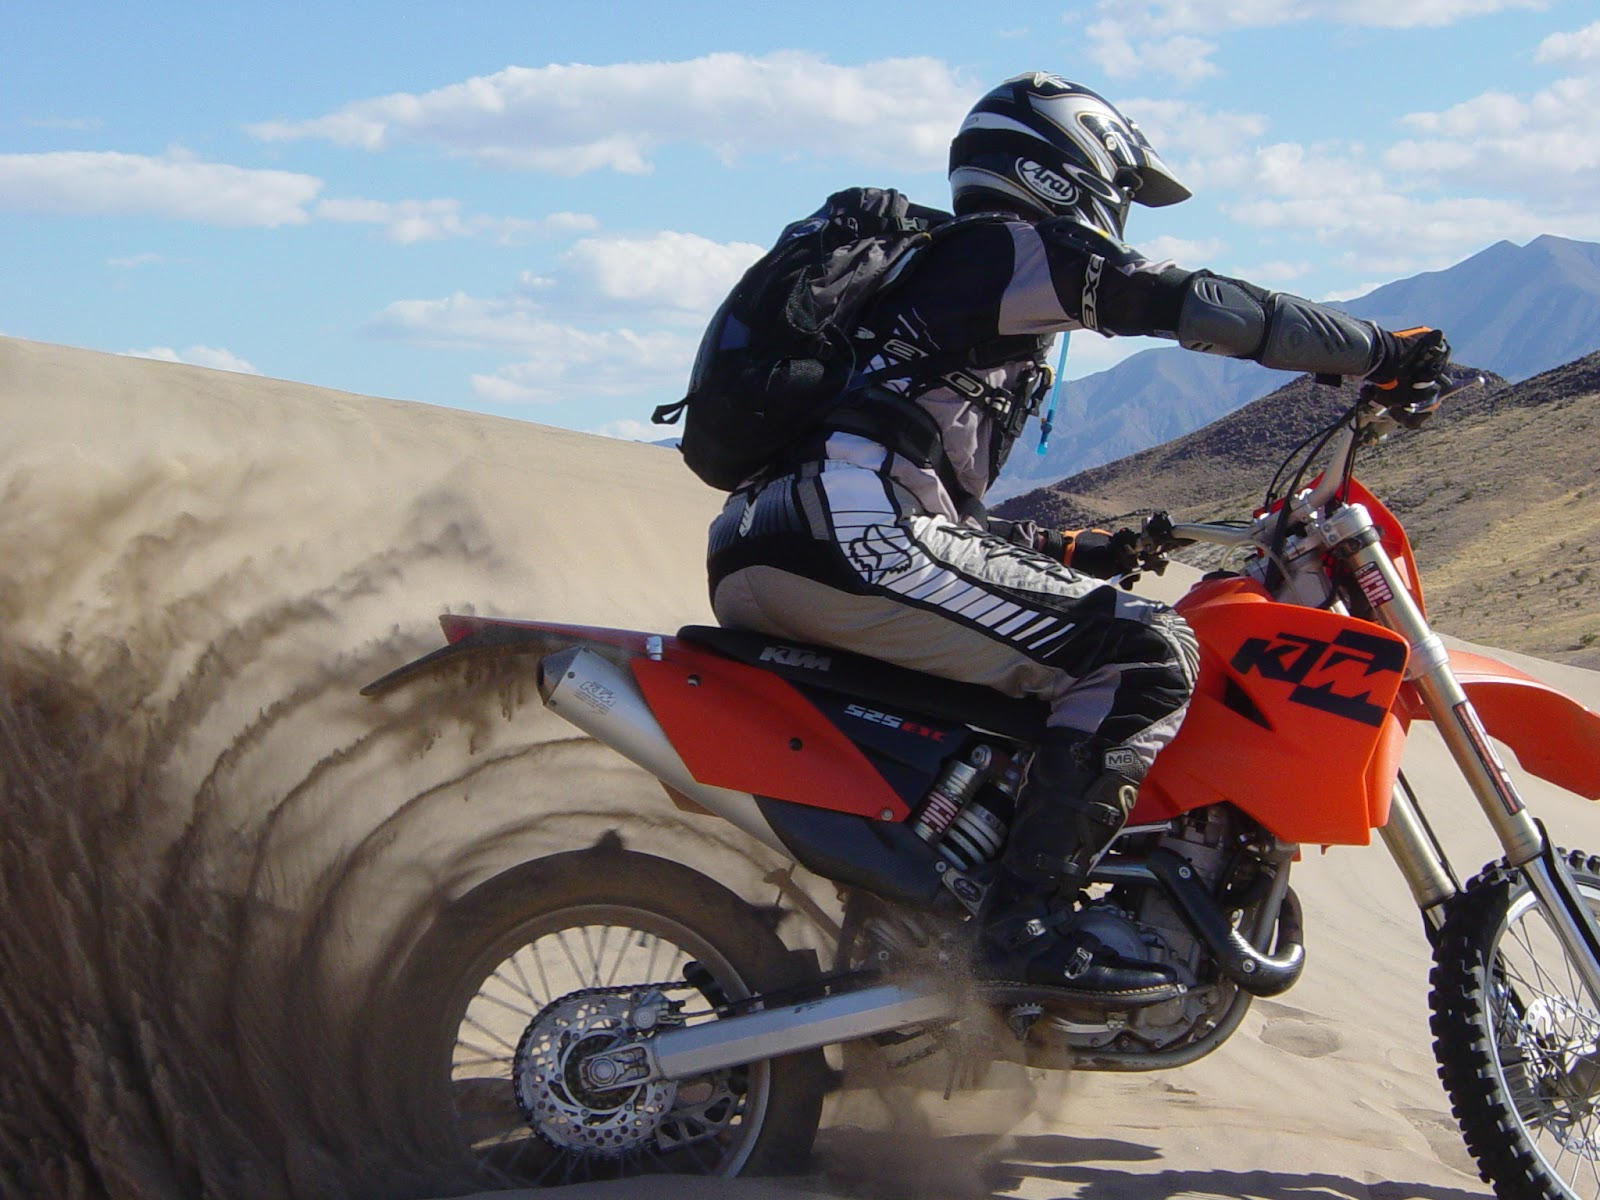 A KTM dirt bike with a paddle